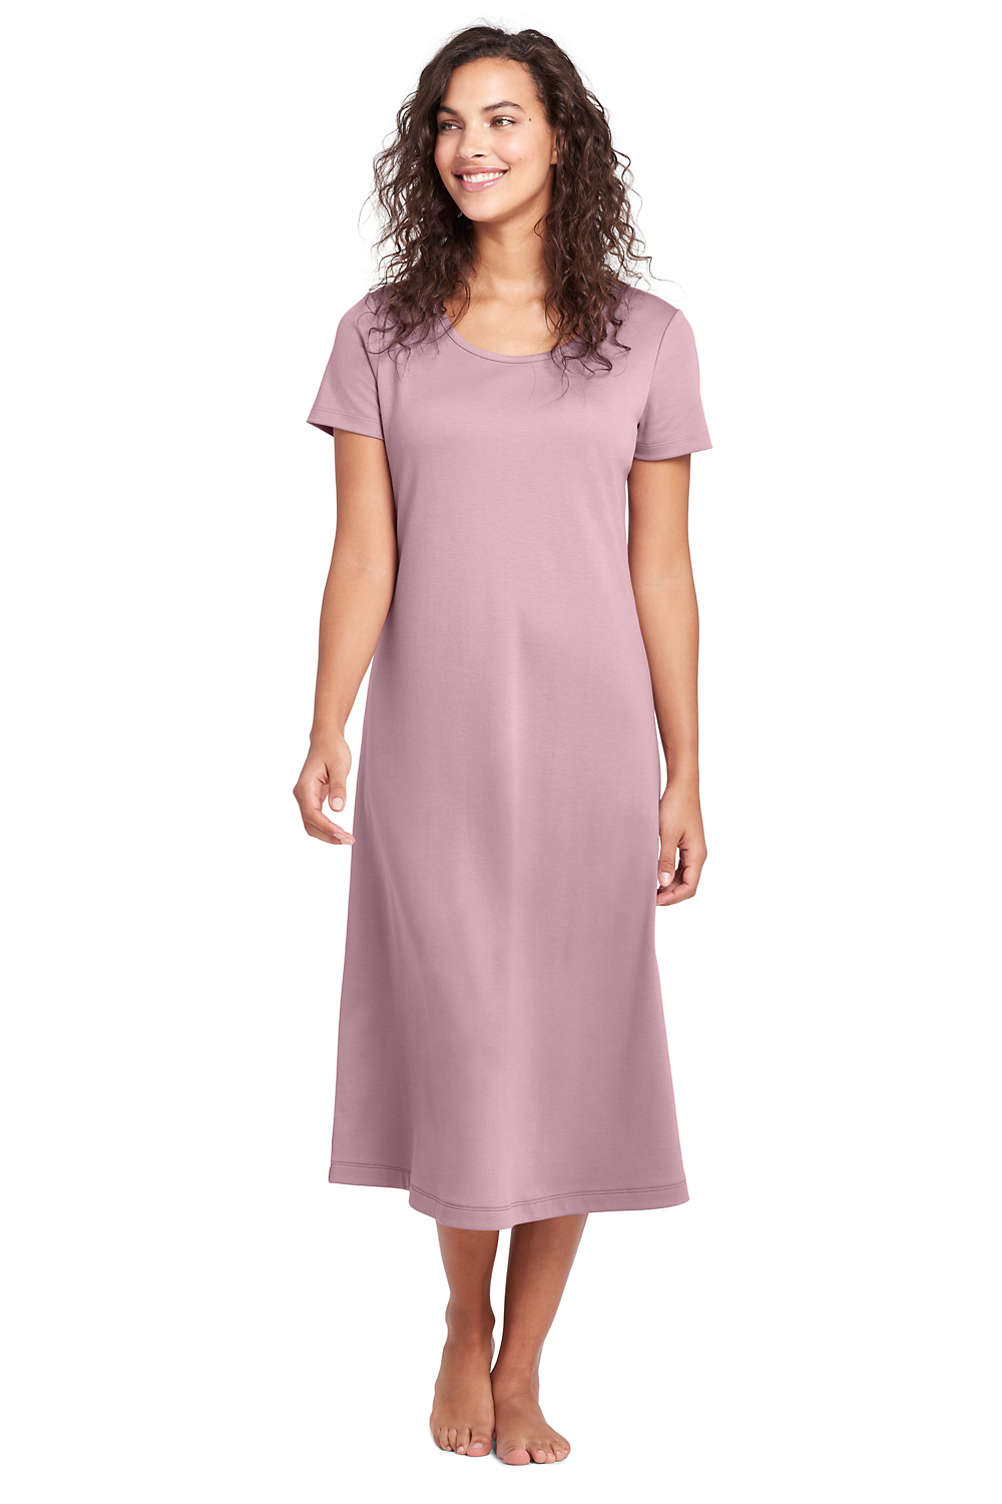 38cbc4e223a Women's Midcalf Supima Cotton Nightgown from Lands' End